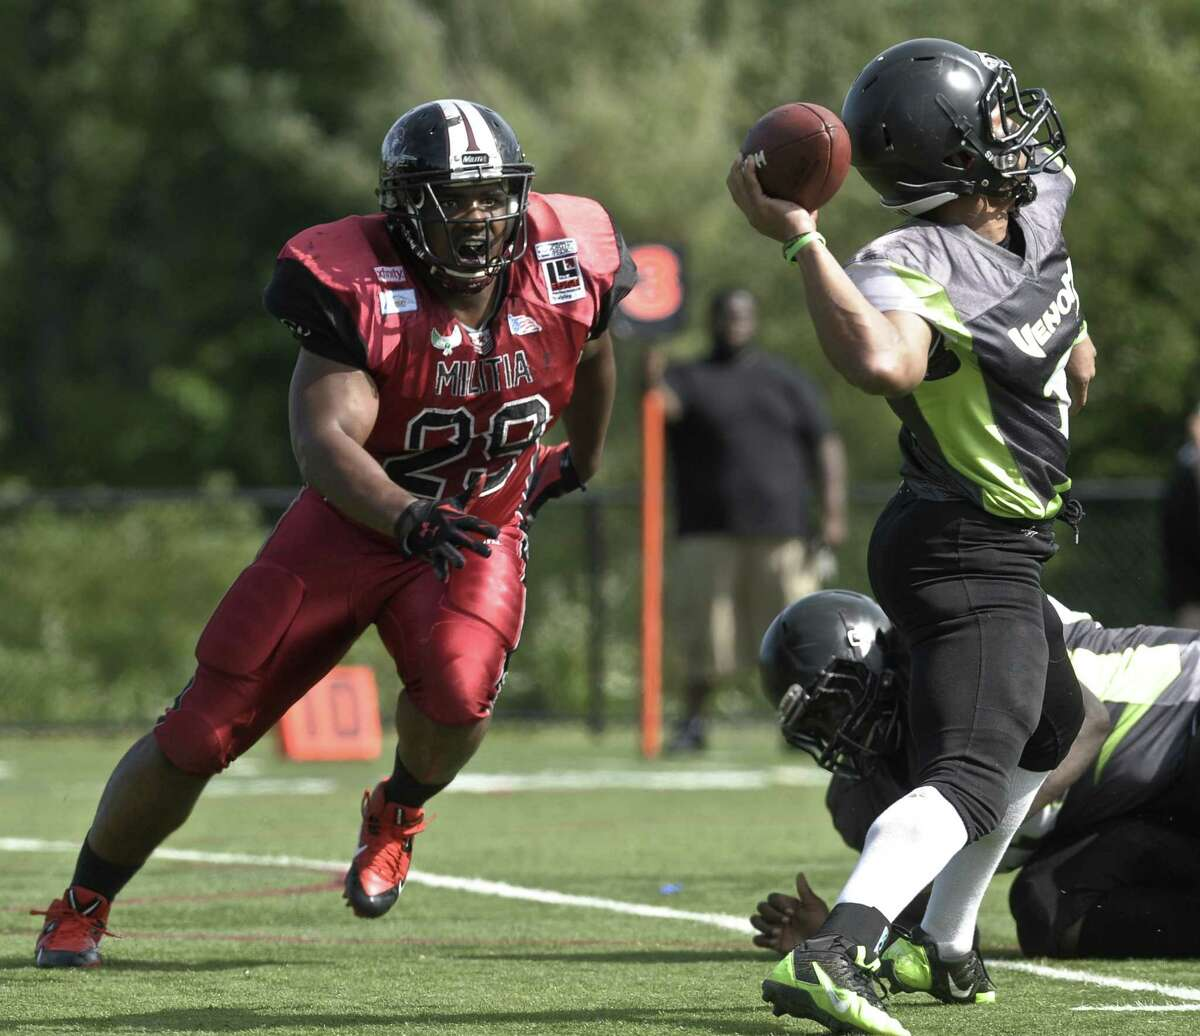 Ct Militia's Jasper Ramsey (29) closes in on New Haven's quarter back Andrew Smith (1) during a New England Football League pre-season game between the New Haven Venom and the Western Connecticut Militia at Rogers Park, in Danbury, Conn, on Saturday, June 13, 2015.